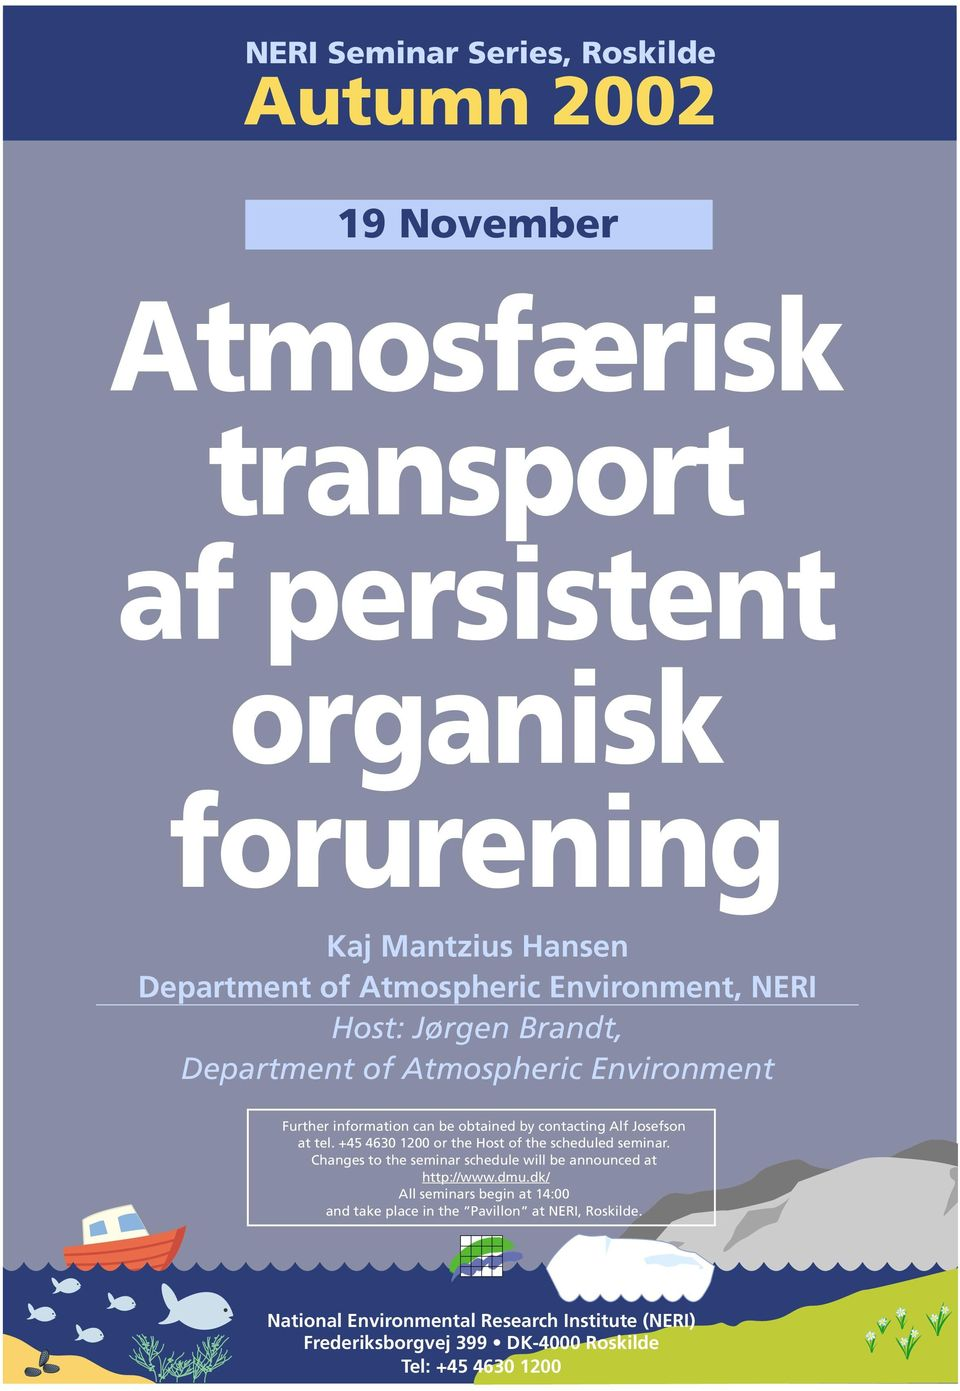 Department of Atmospheric Environment, NERI